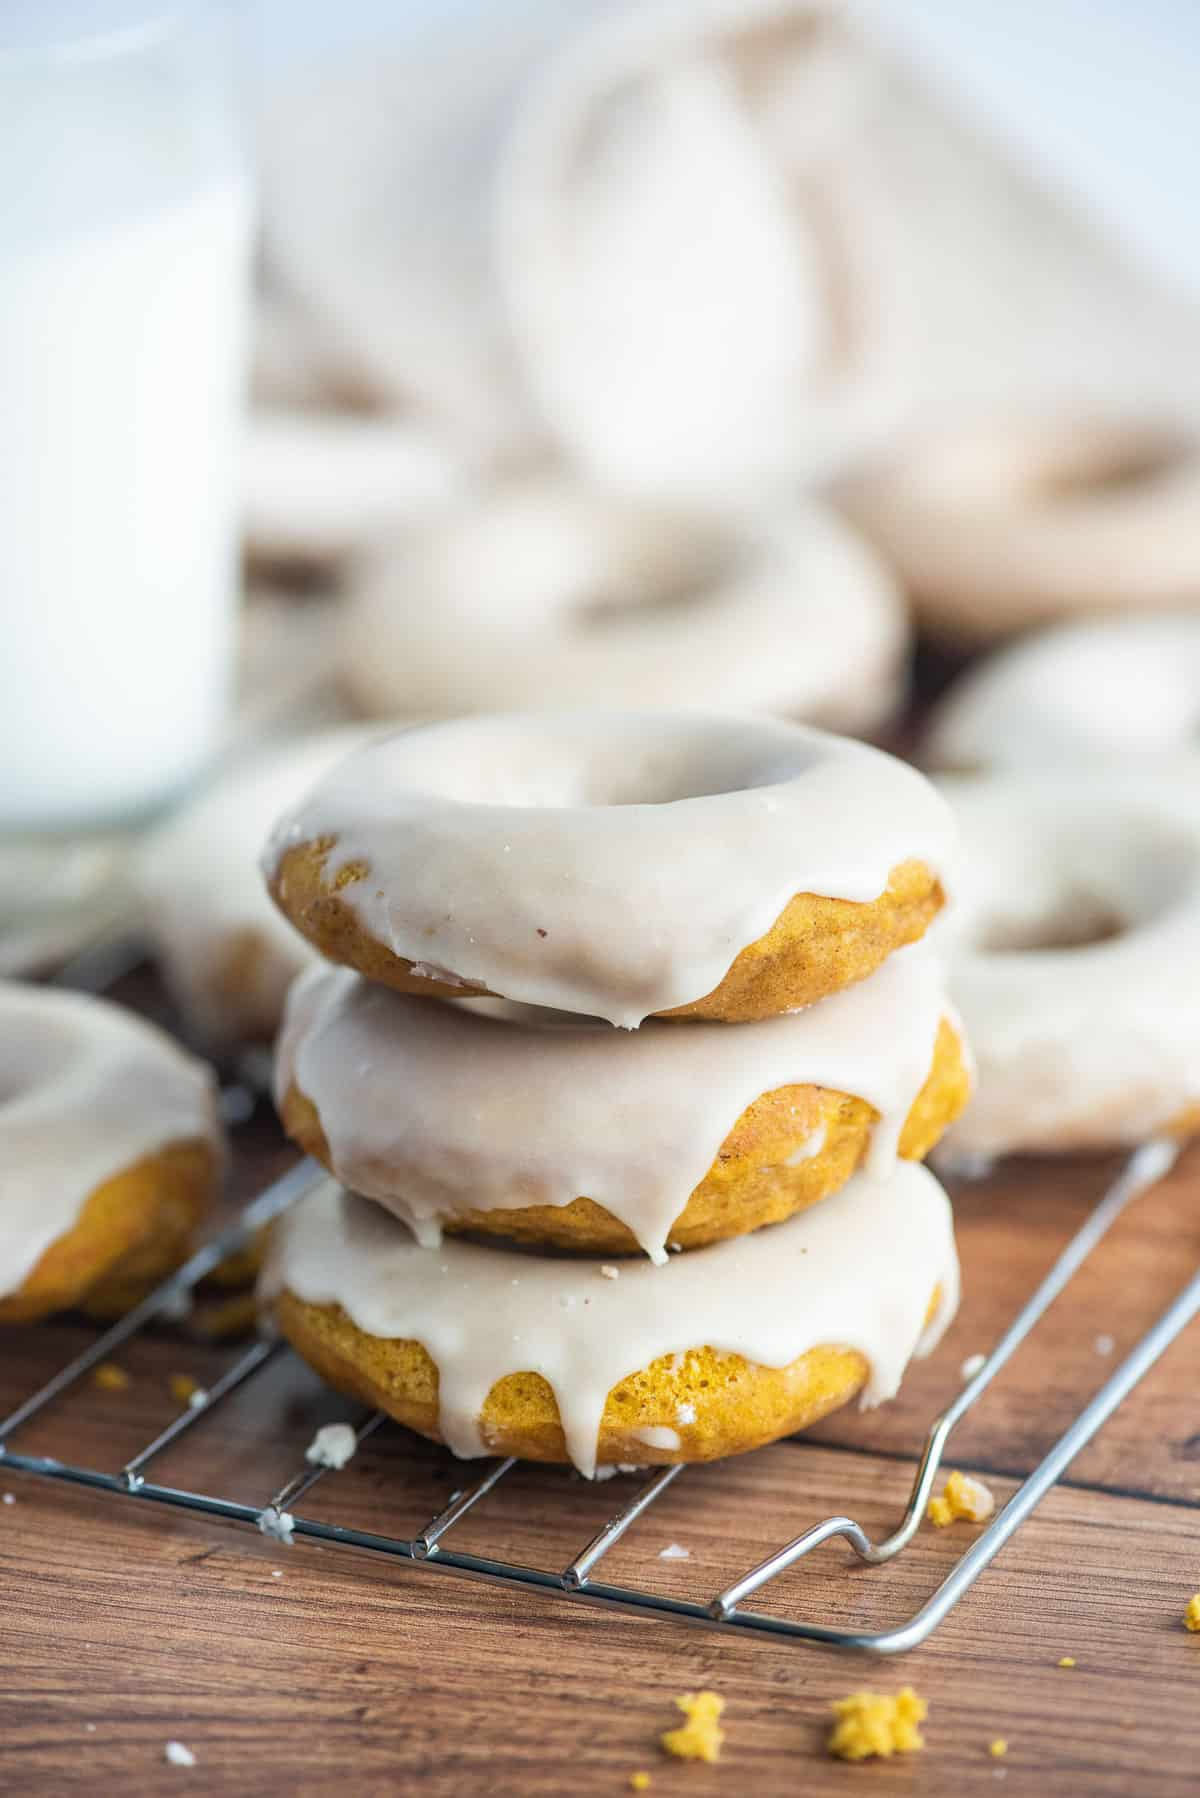 Three pumpkin donuts with glaze, more in the background.